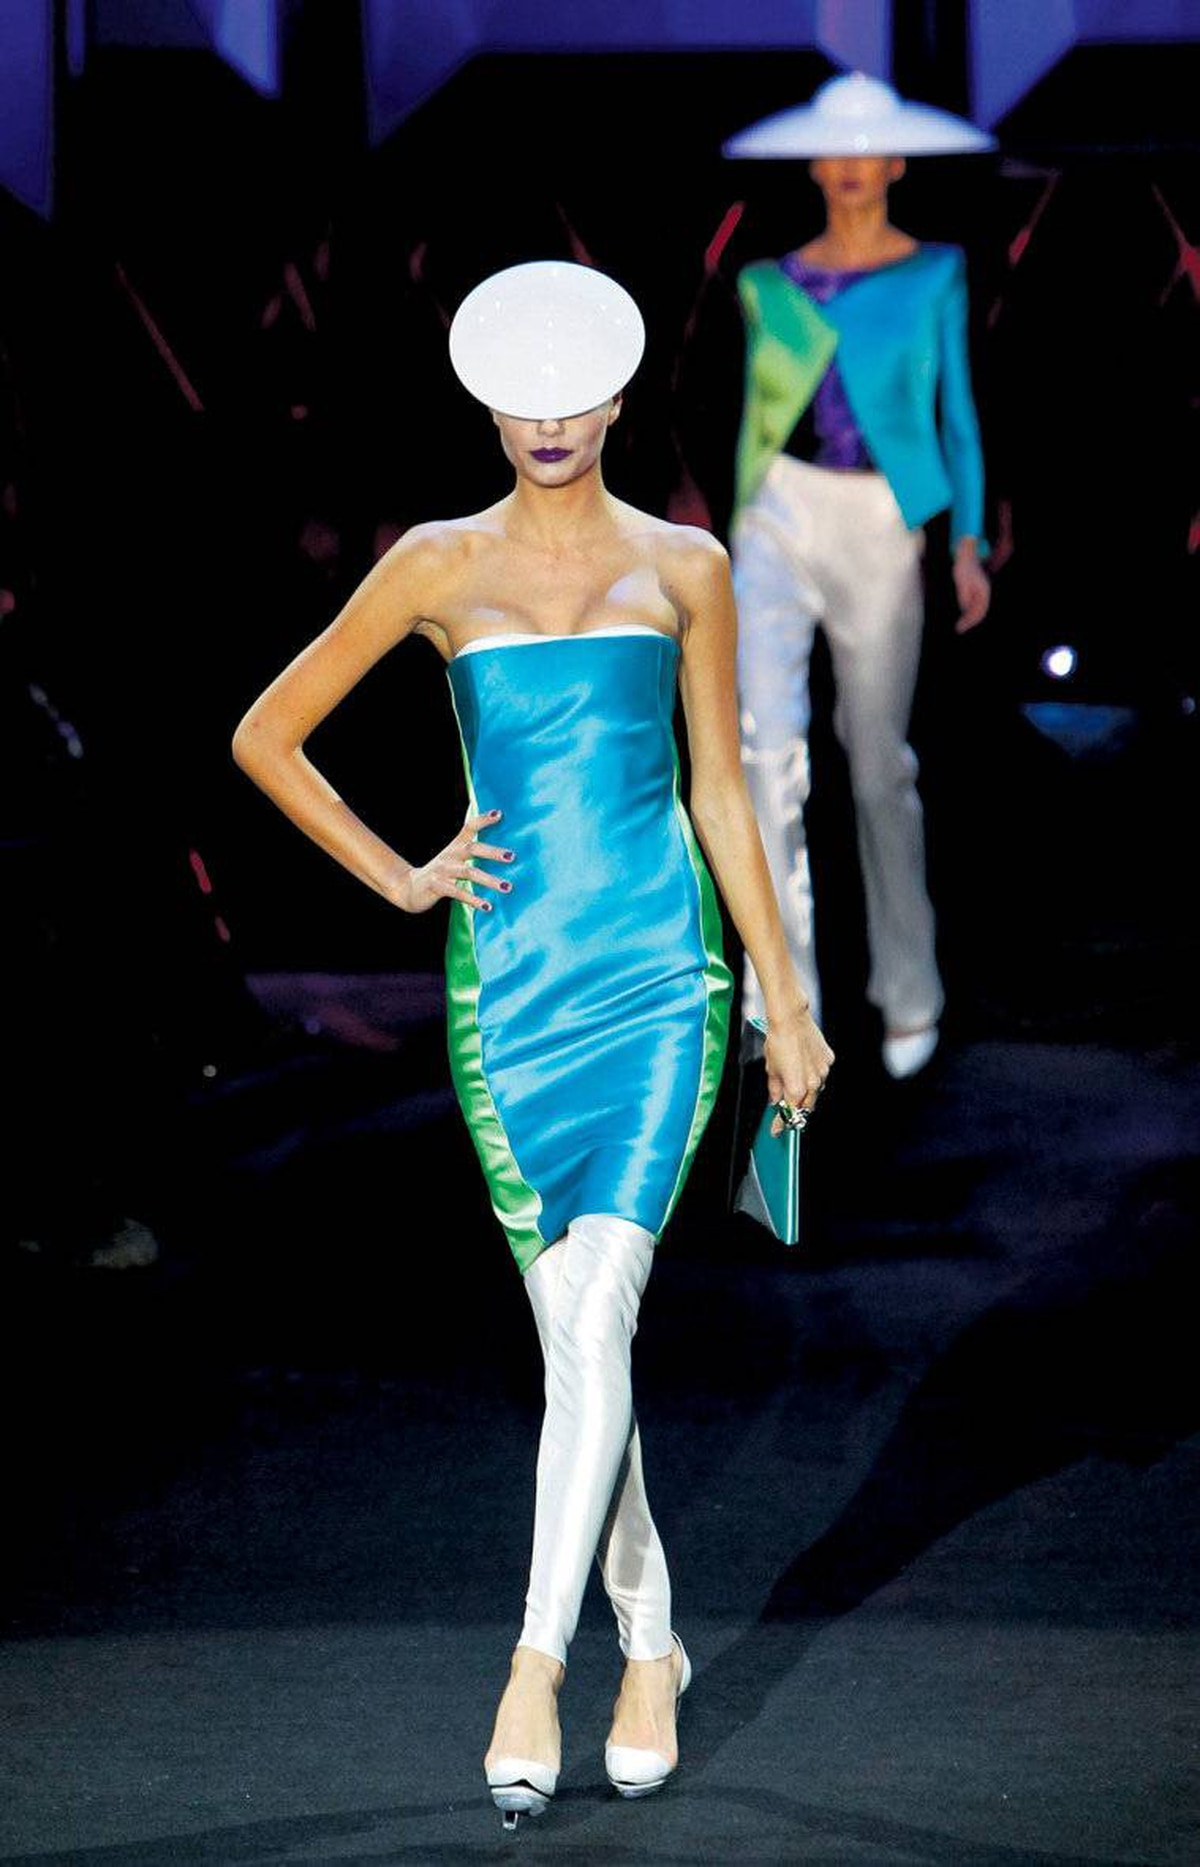 Armani Priv�?s glam, space-age-inspired collection featured sleek separates in silky metallic fabrics topped with spherical headgear by famed British milliner Philip Treacy.